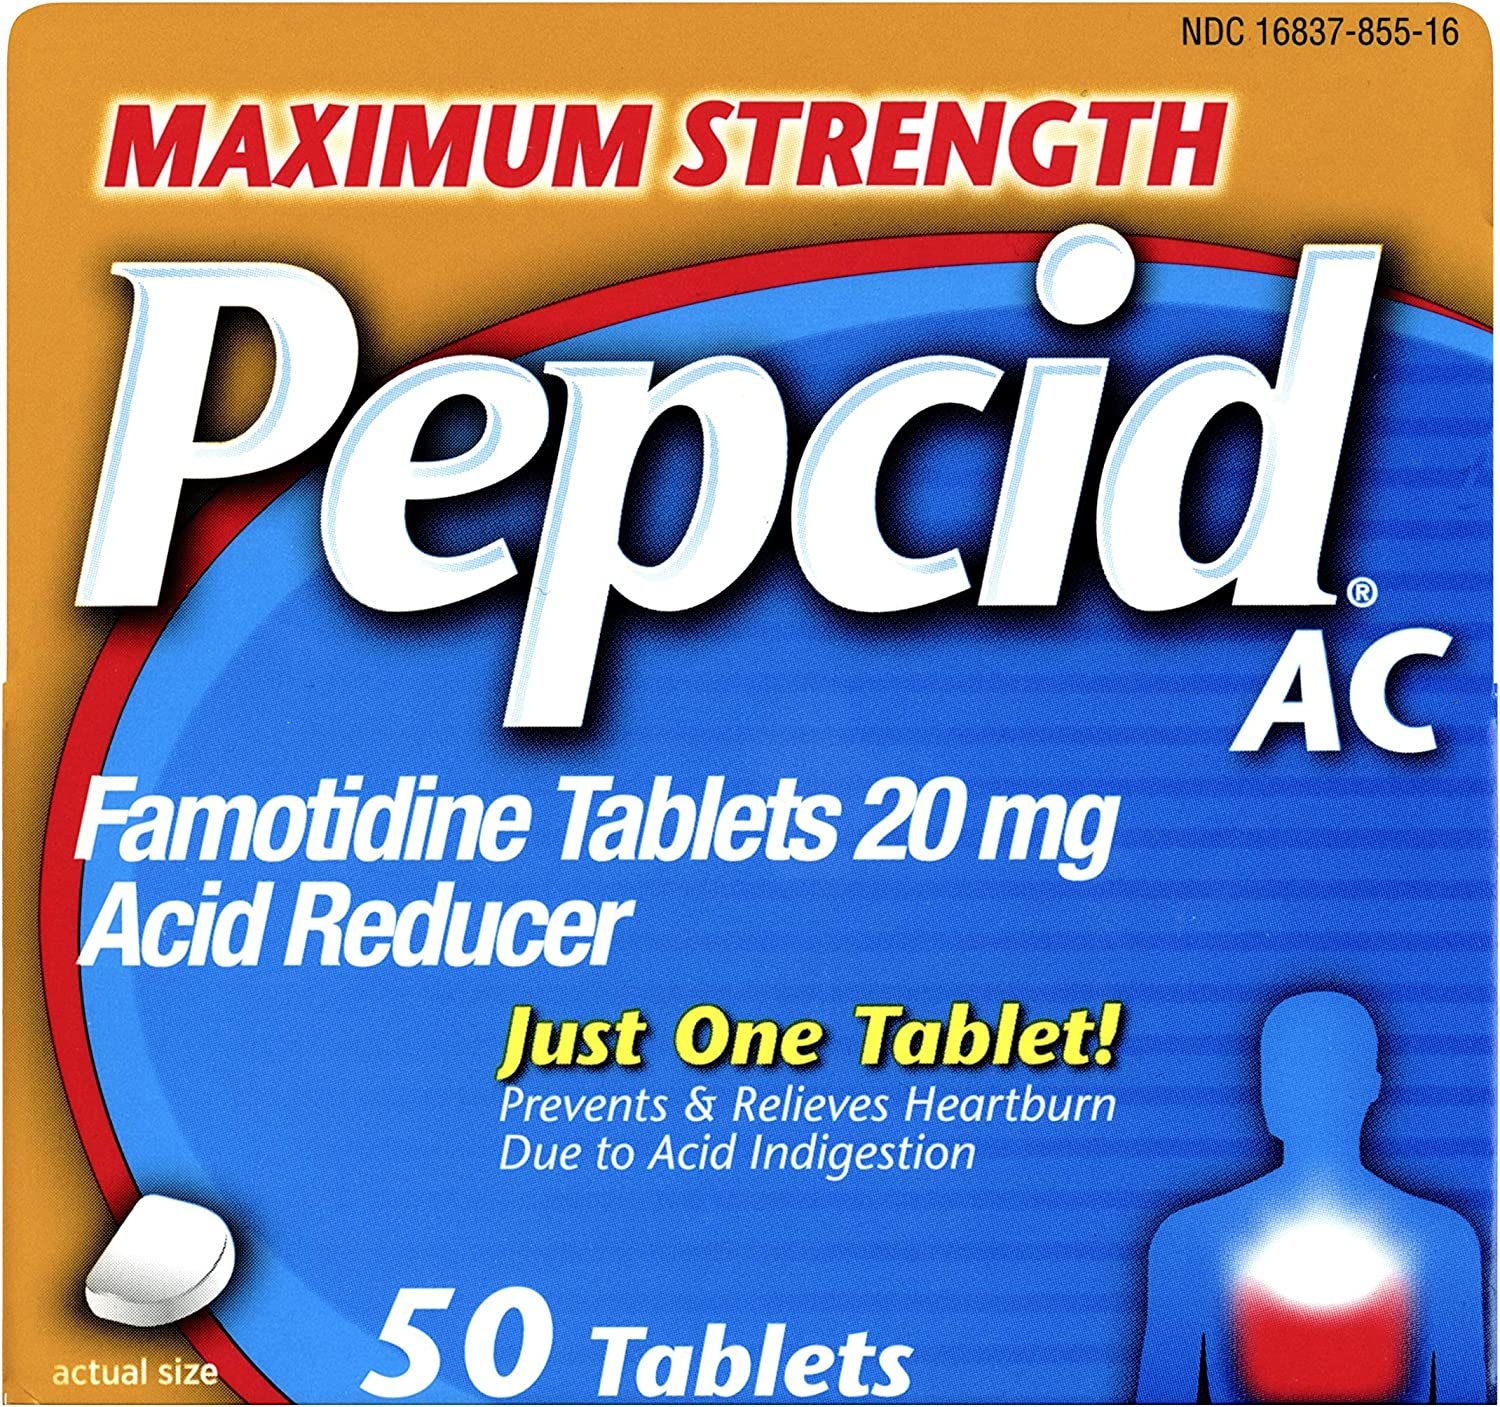 Pepcid AC Maximum Strength with 20 mg Famotidine for All-Day Heartburn Prevention & Relief, 50 ct.: Health & Personal Care